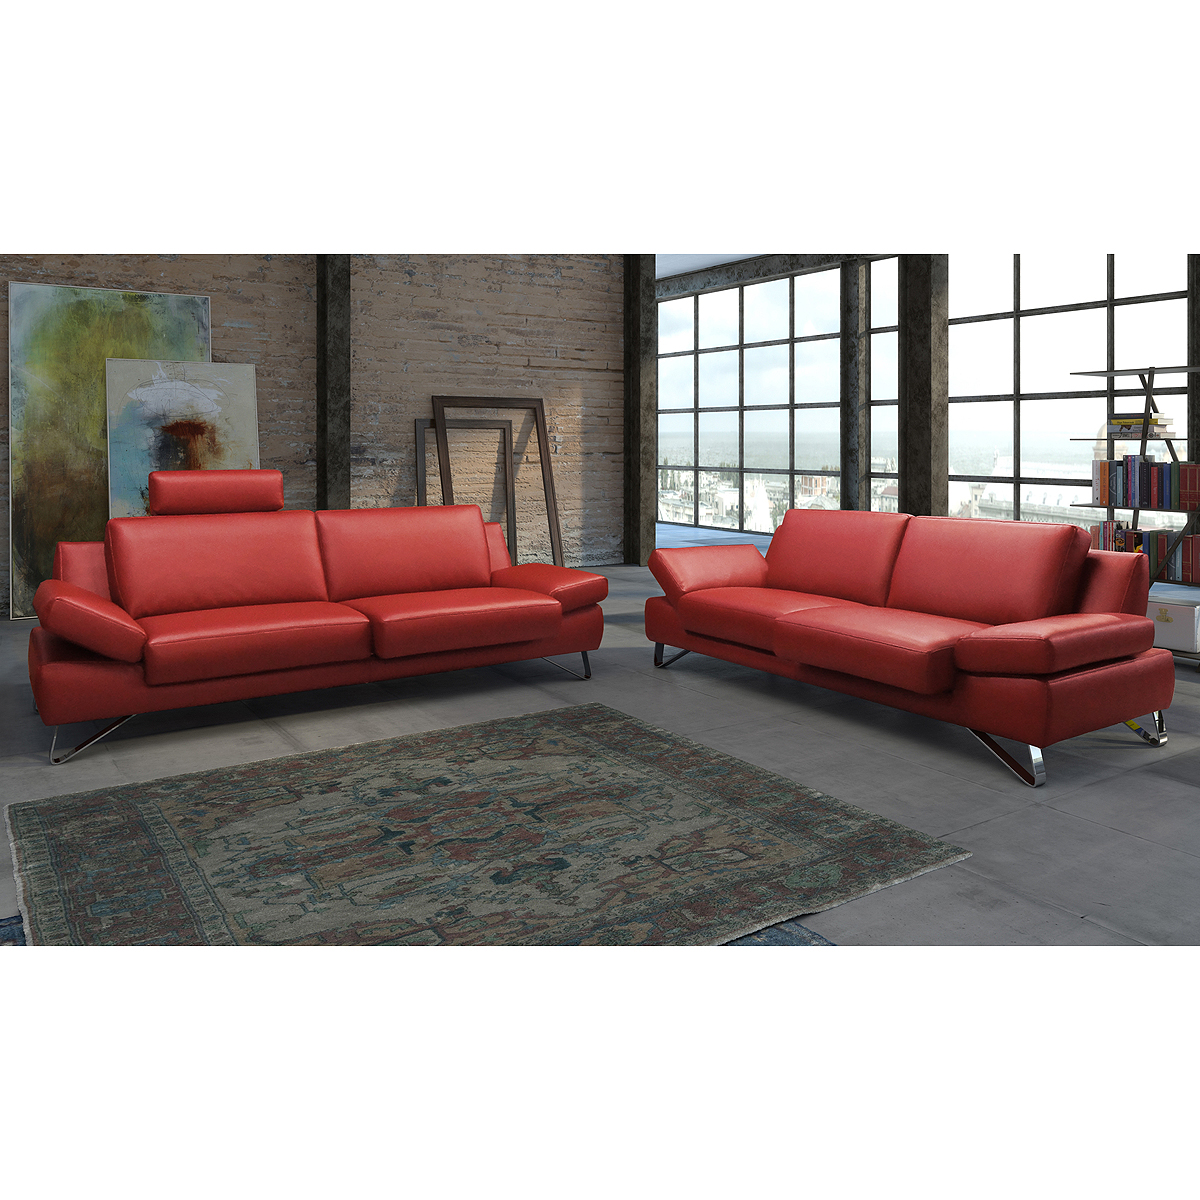 sofagarnitur finest sofa garnitur polsterm bel leder kaminrot rot mit funktionen eur. Black Bedroom Furniture Sets. Home Design Ideas